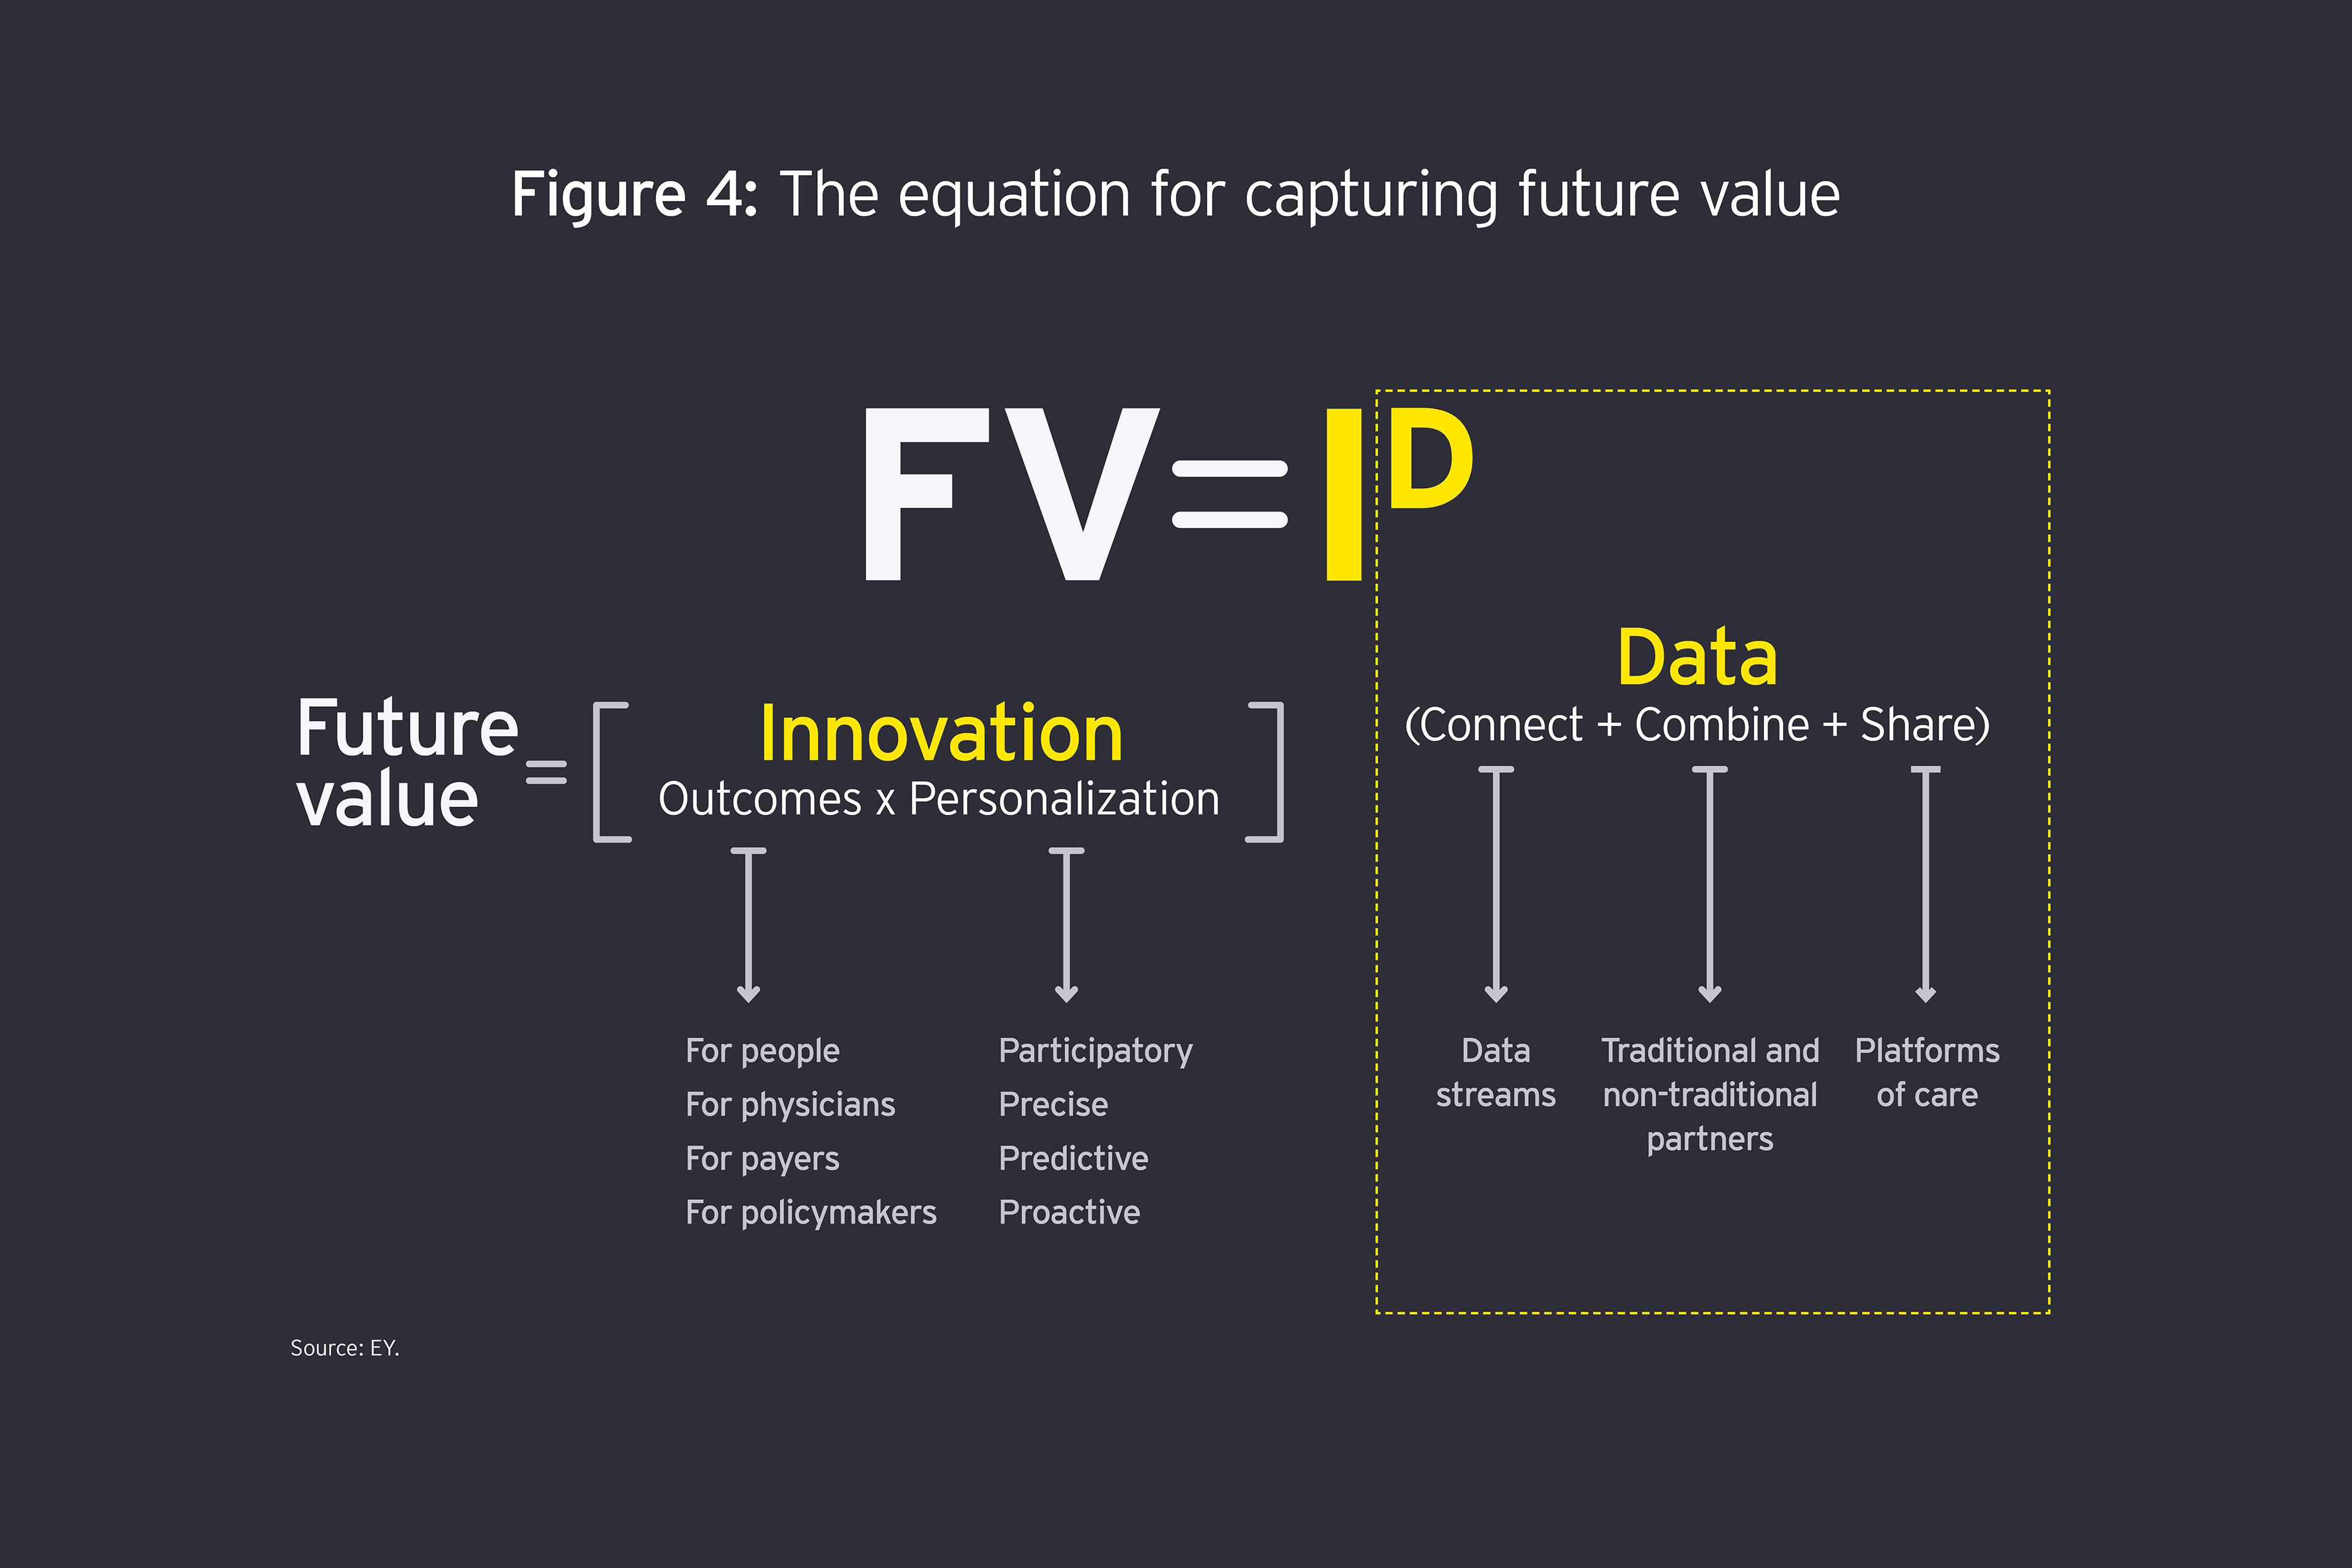 Figure 4. How future value will be delivered